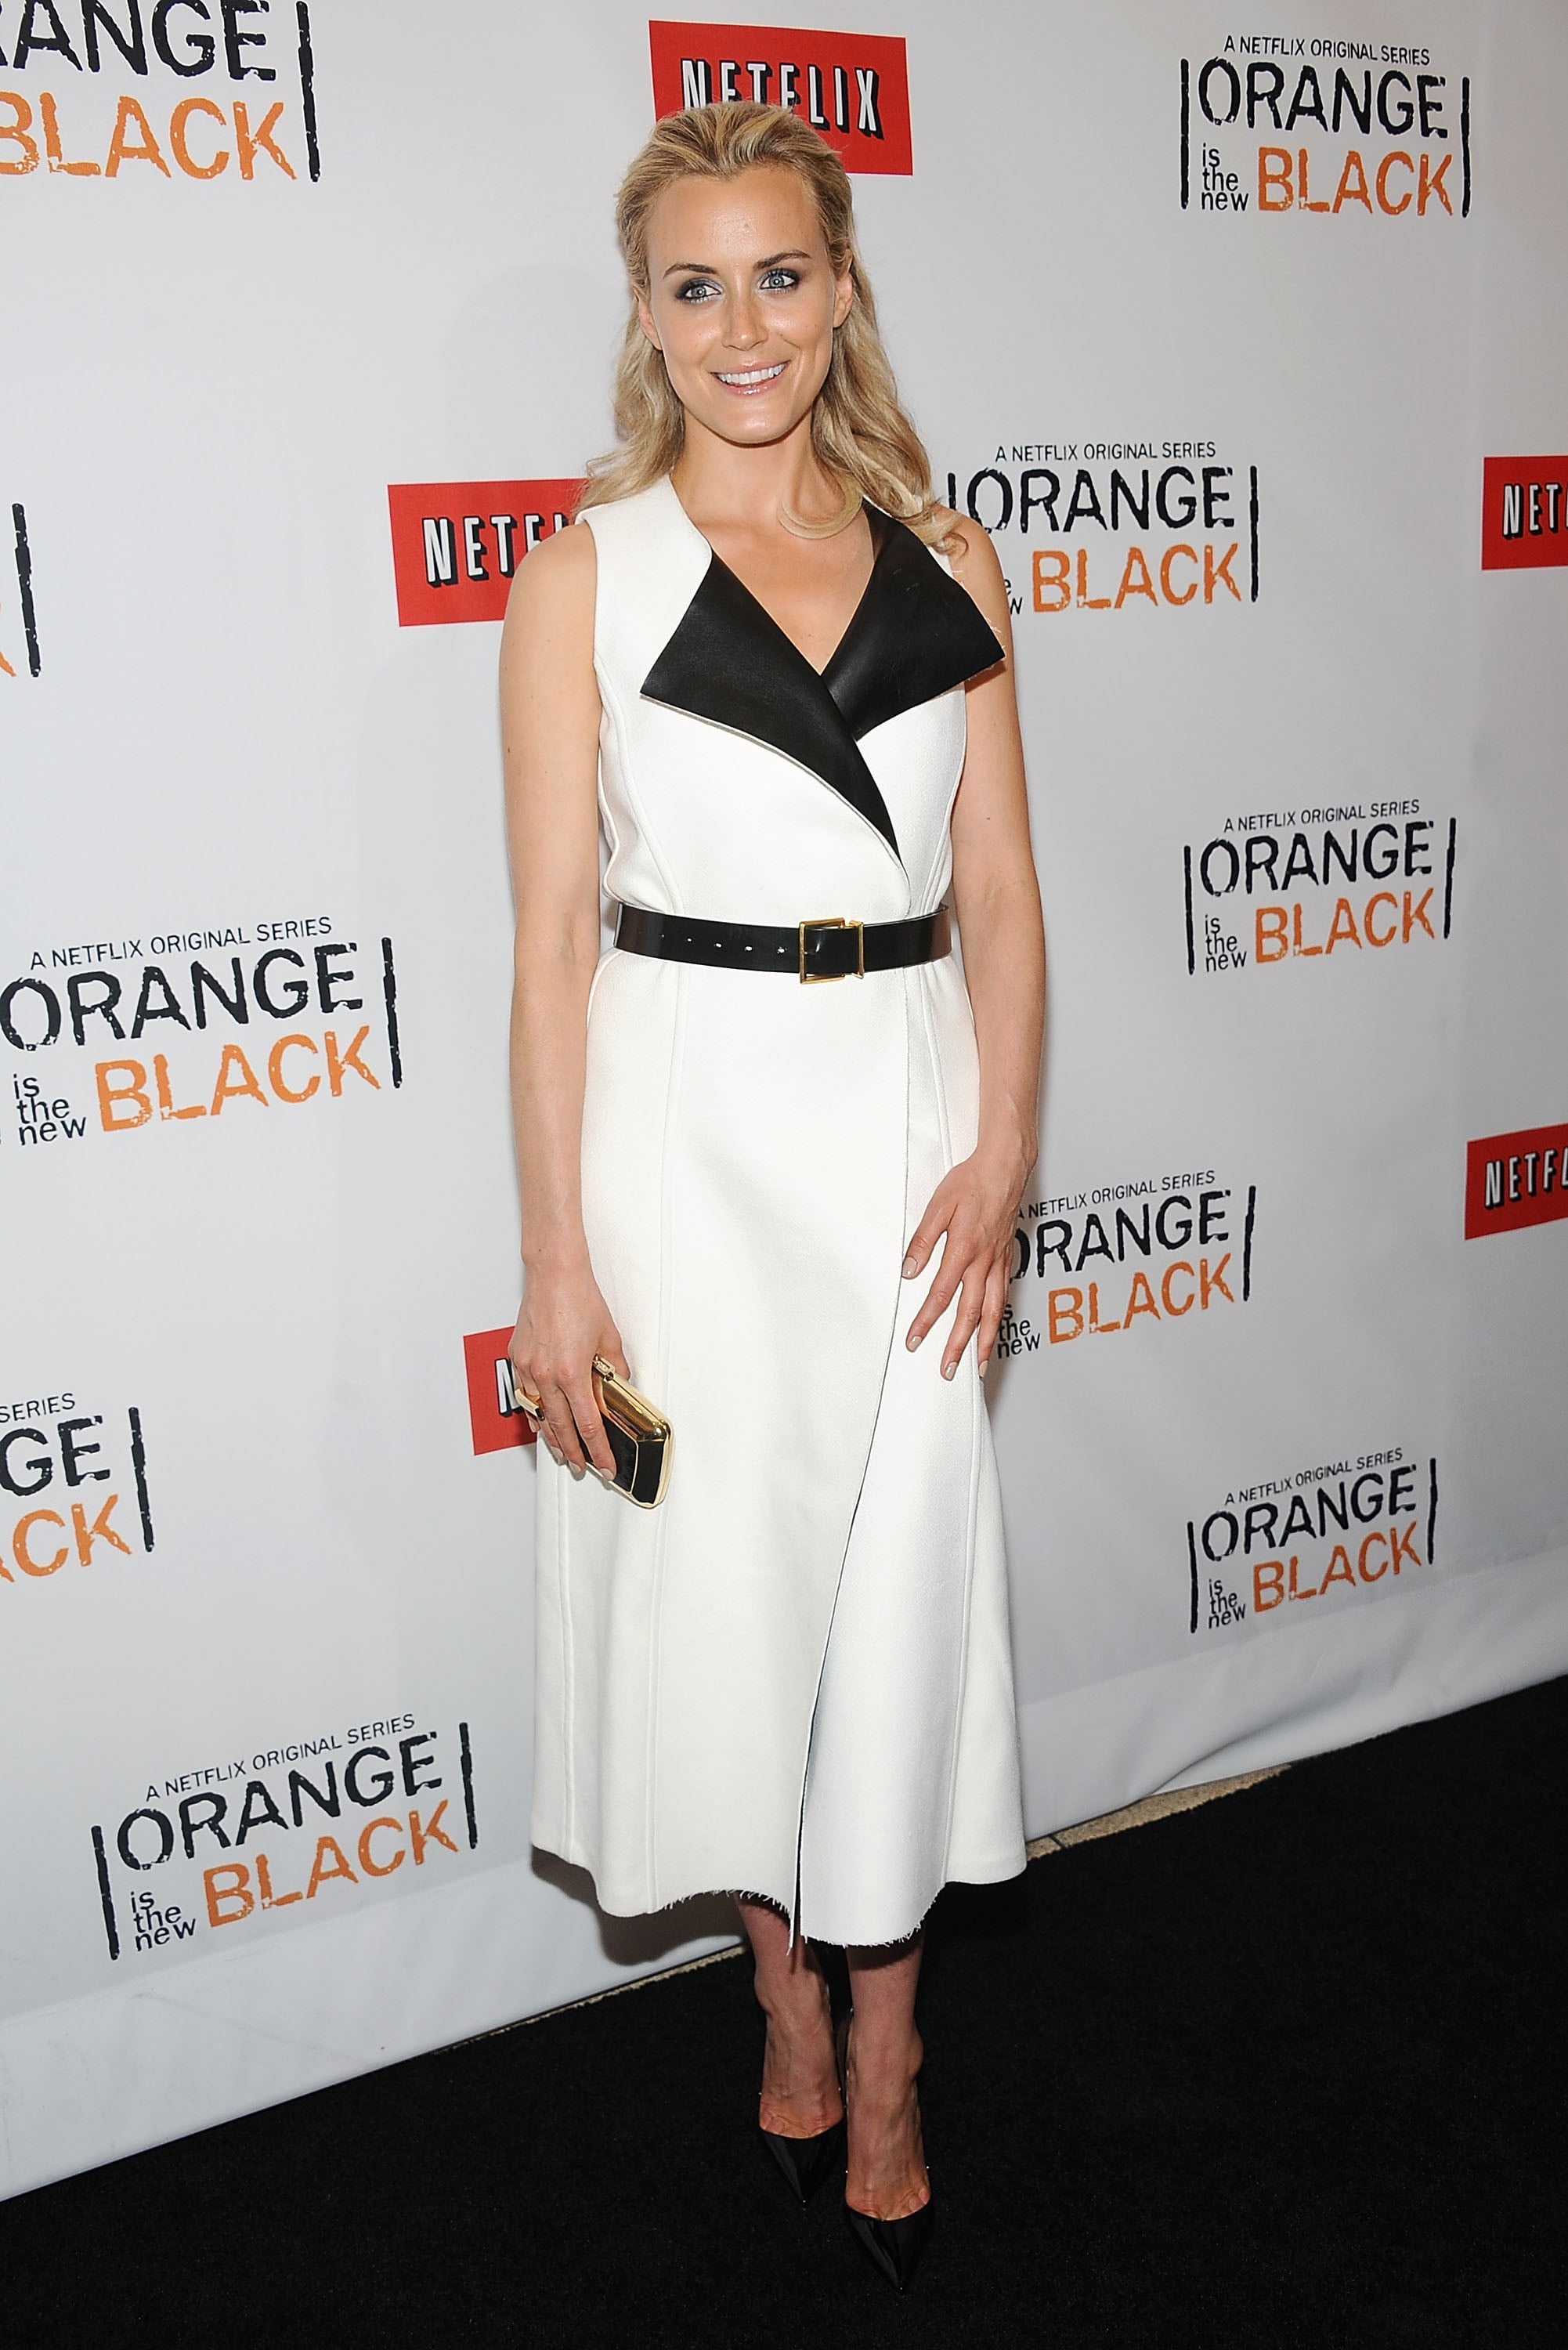 The actress embraced the black-and-white trend in a tuxedo-style dress at the NYC premiere of Orange Is the New Black.